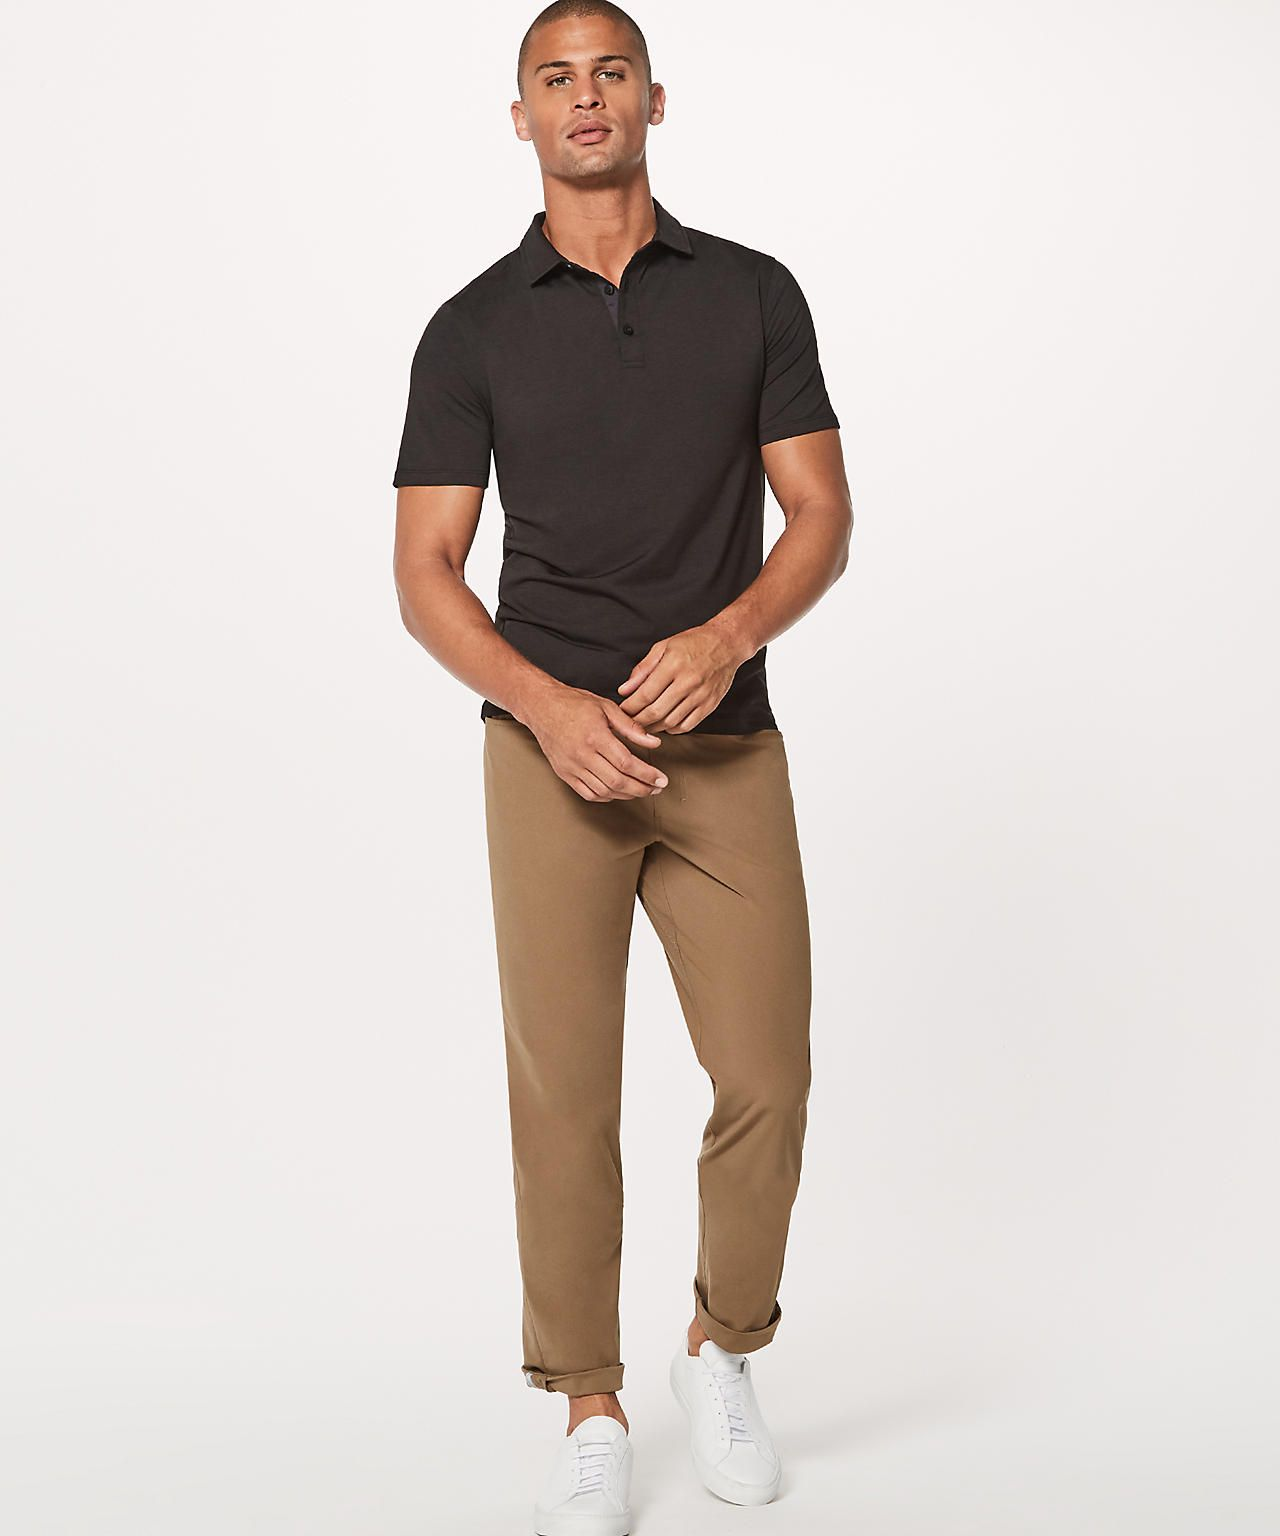 bea81054d black Polo Lululemon Lululemon Athletica